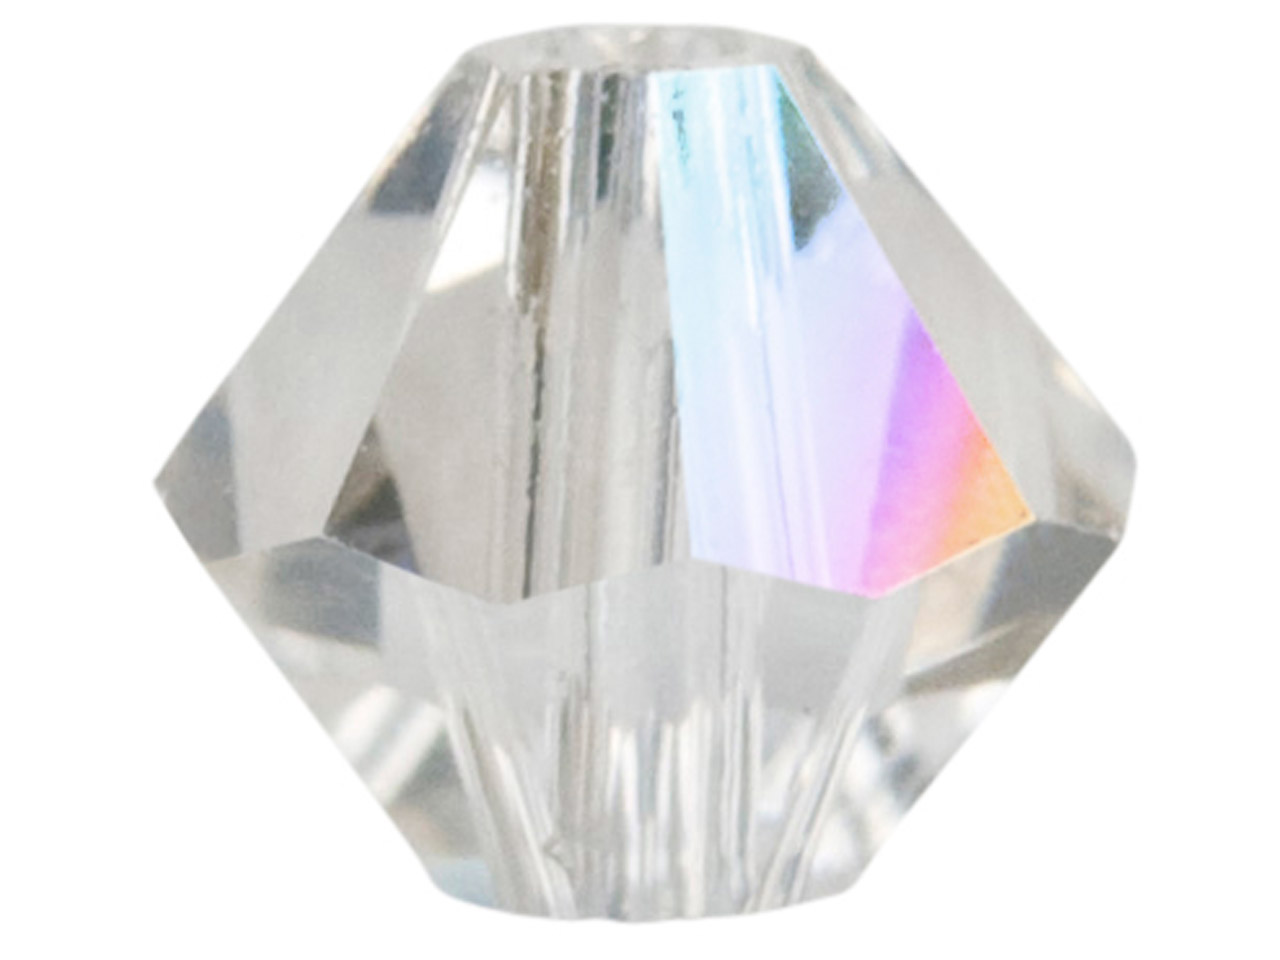 Swarovski Crystal Pack of 24       Bicone, 5328, 4mm, Crystal Ab